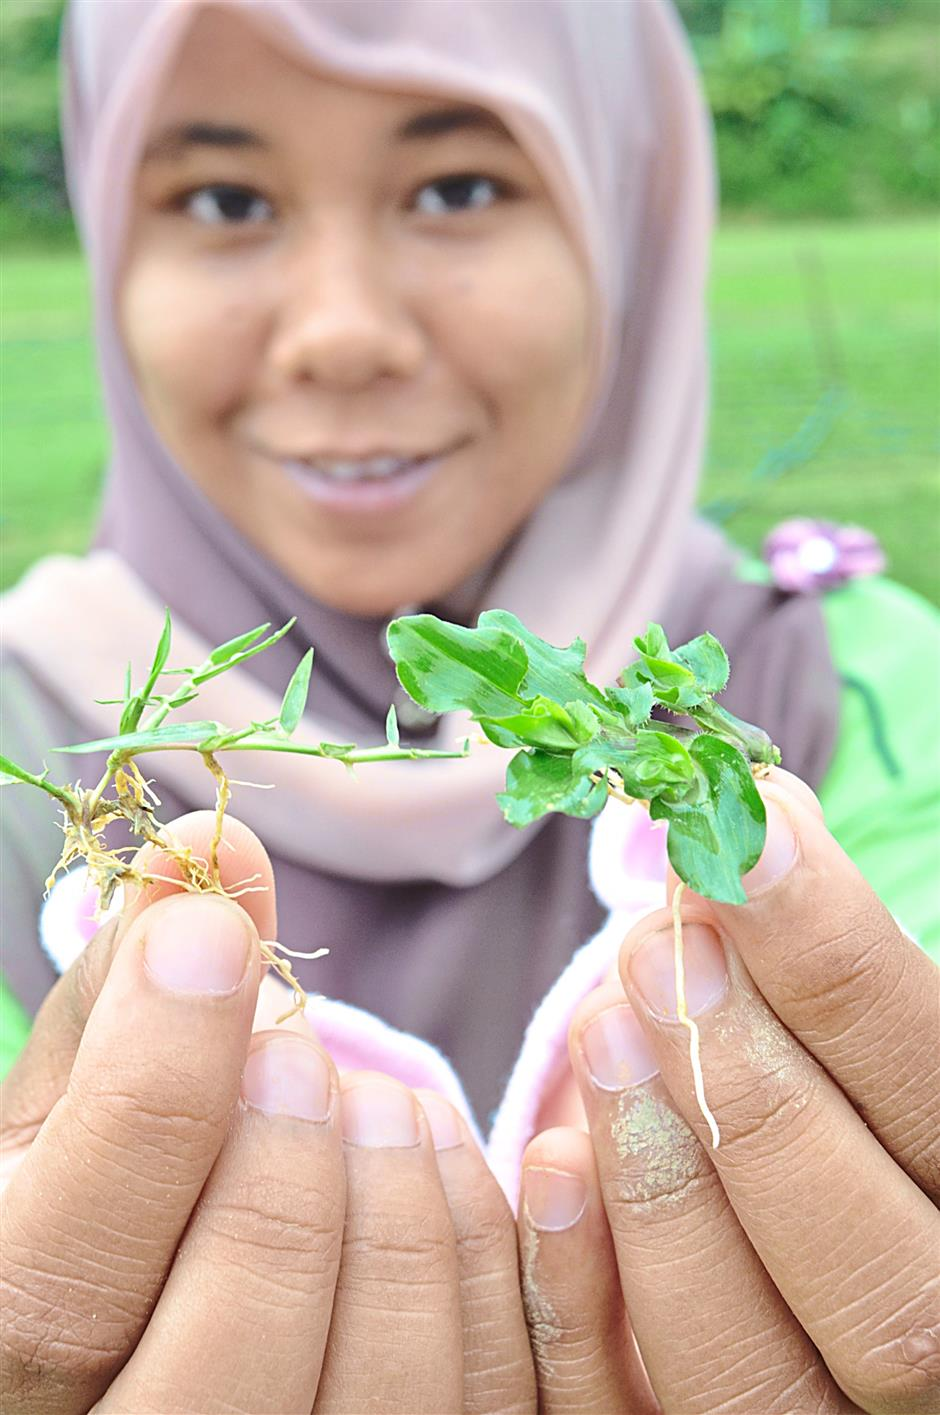 Nurturing future grass experts - Julia Sahira, 25, a UPM graduate pursues her fascination for turf grass working for Four Seasons.